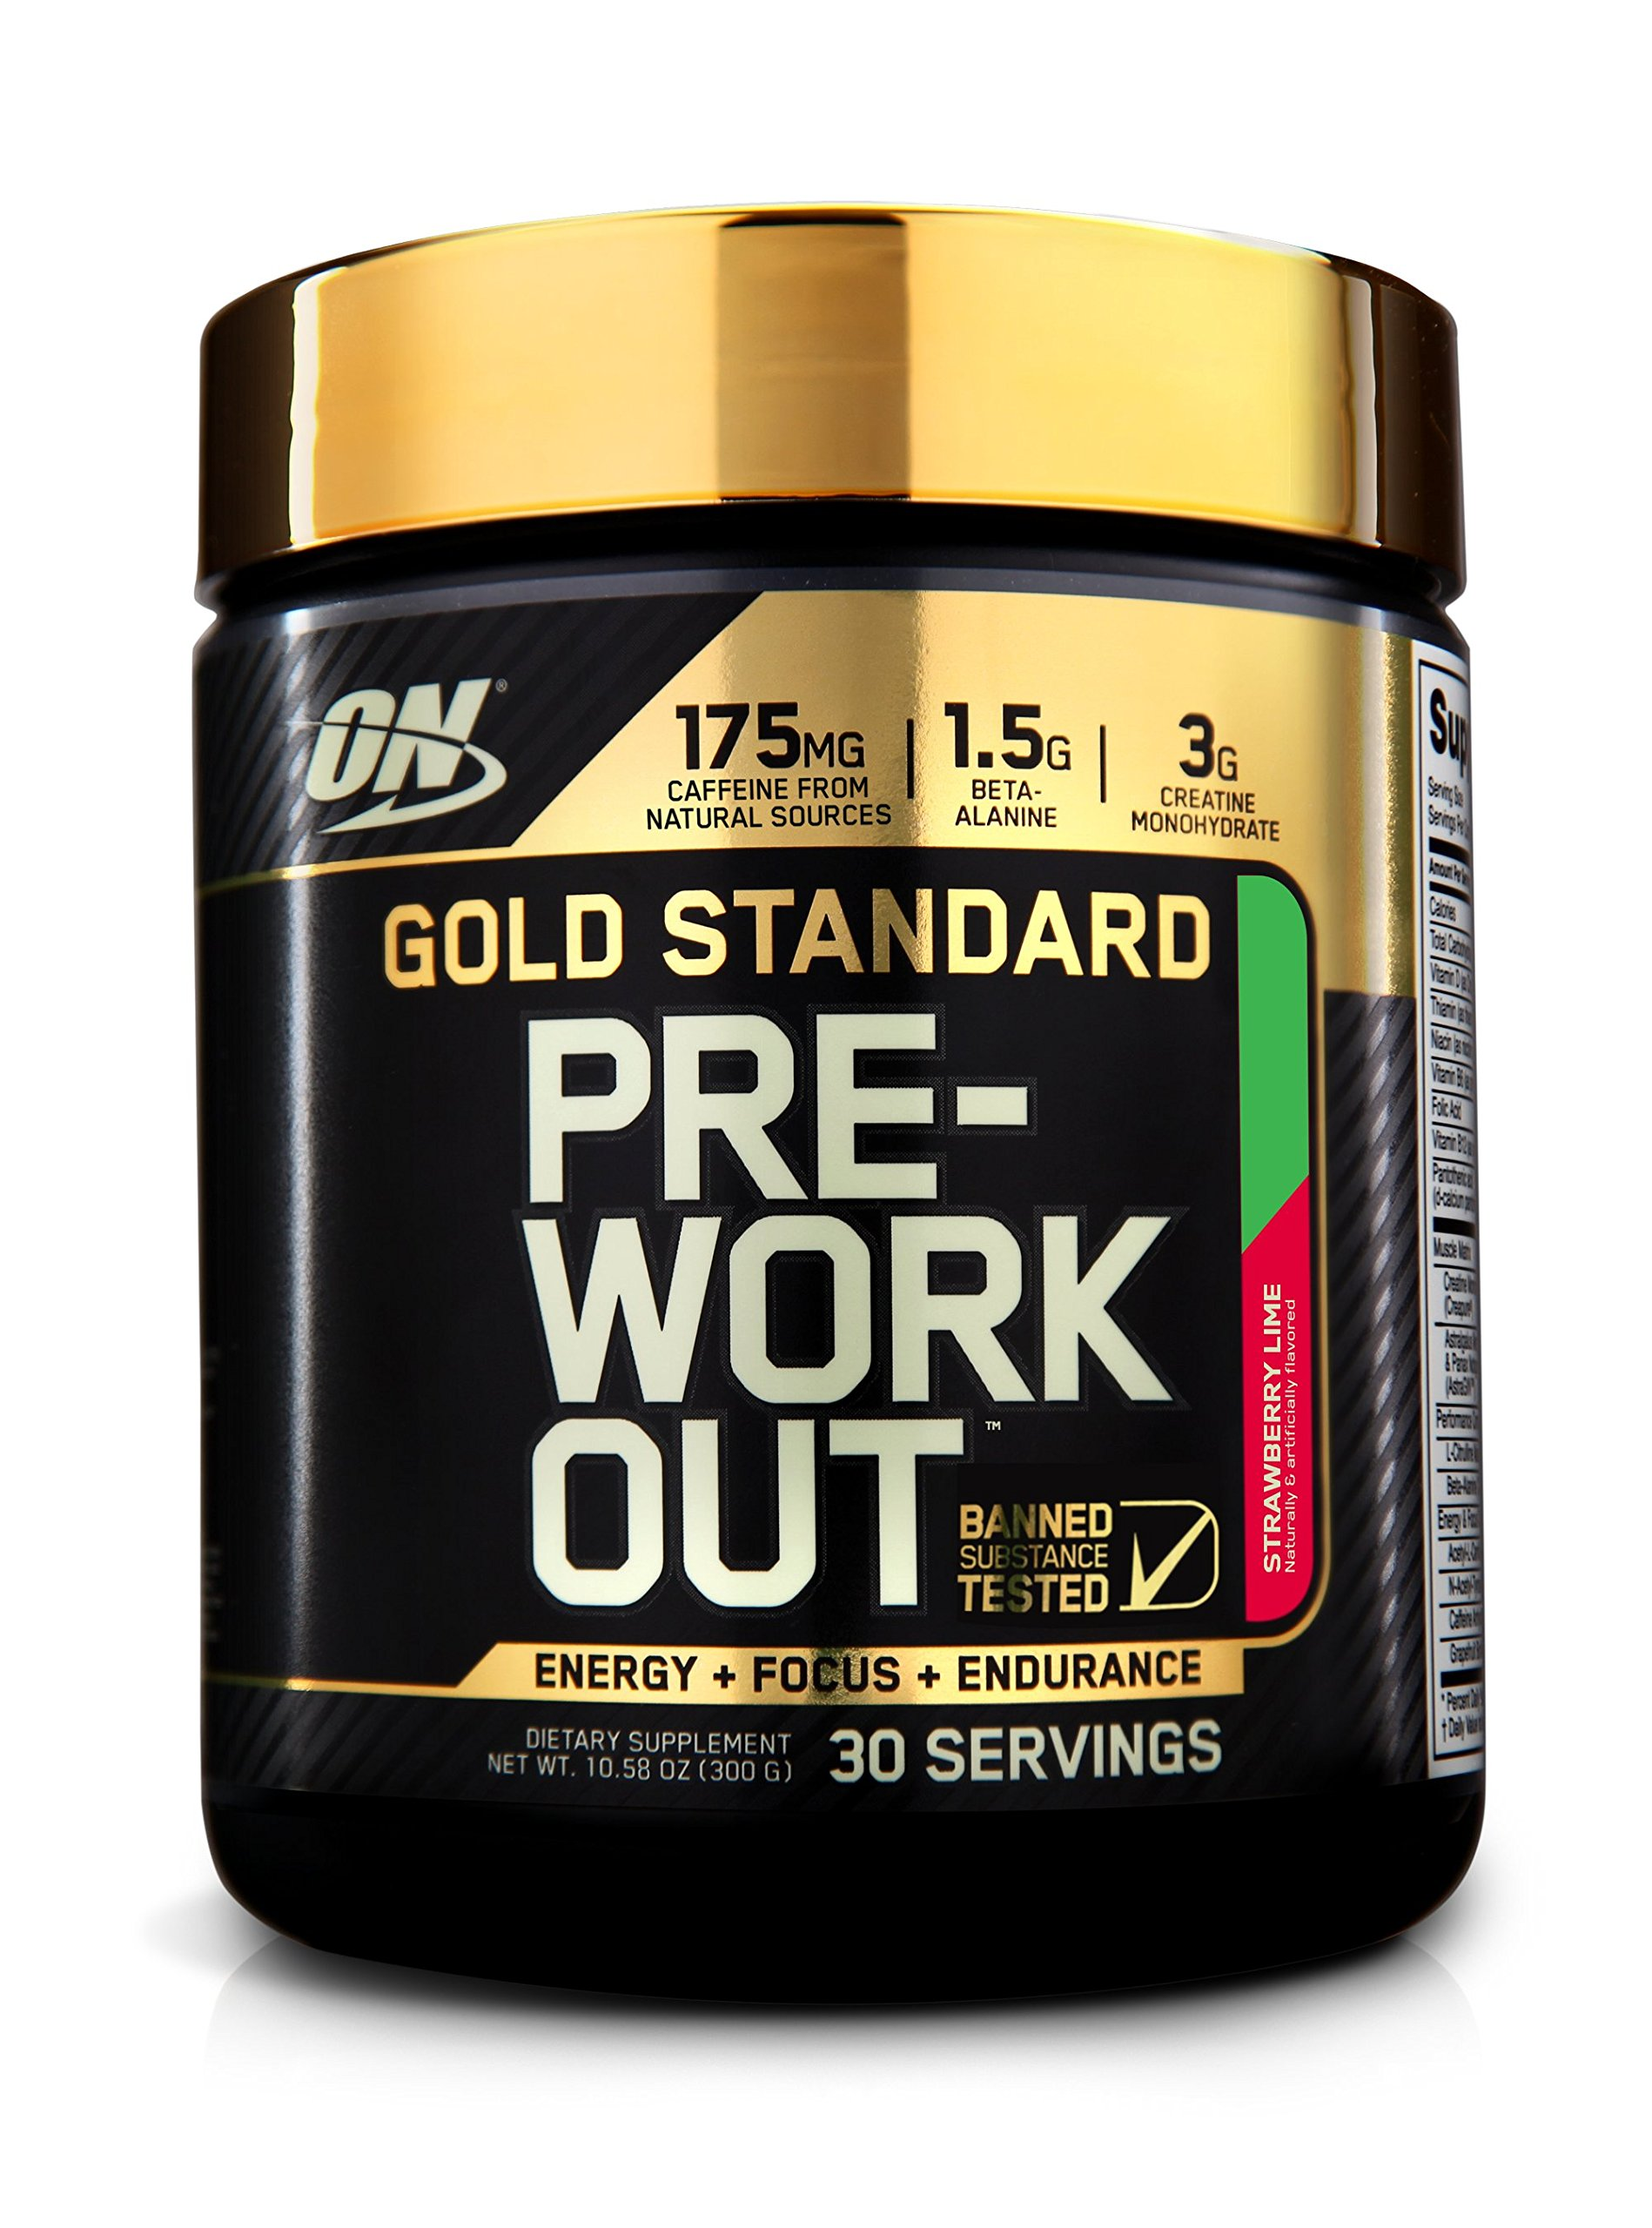 OPTIMUM NUTRITION Gold Standard Pre-Workout with Creatine, Beta-Alanine, and Caffeine for Energy, Keto Friendly, Strawberry Lime, 30 Servings by Optimum Nutrition